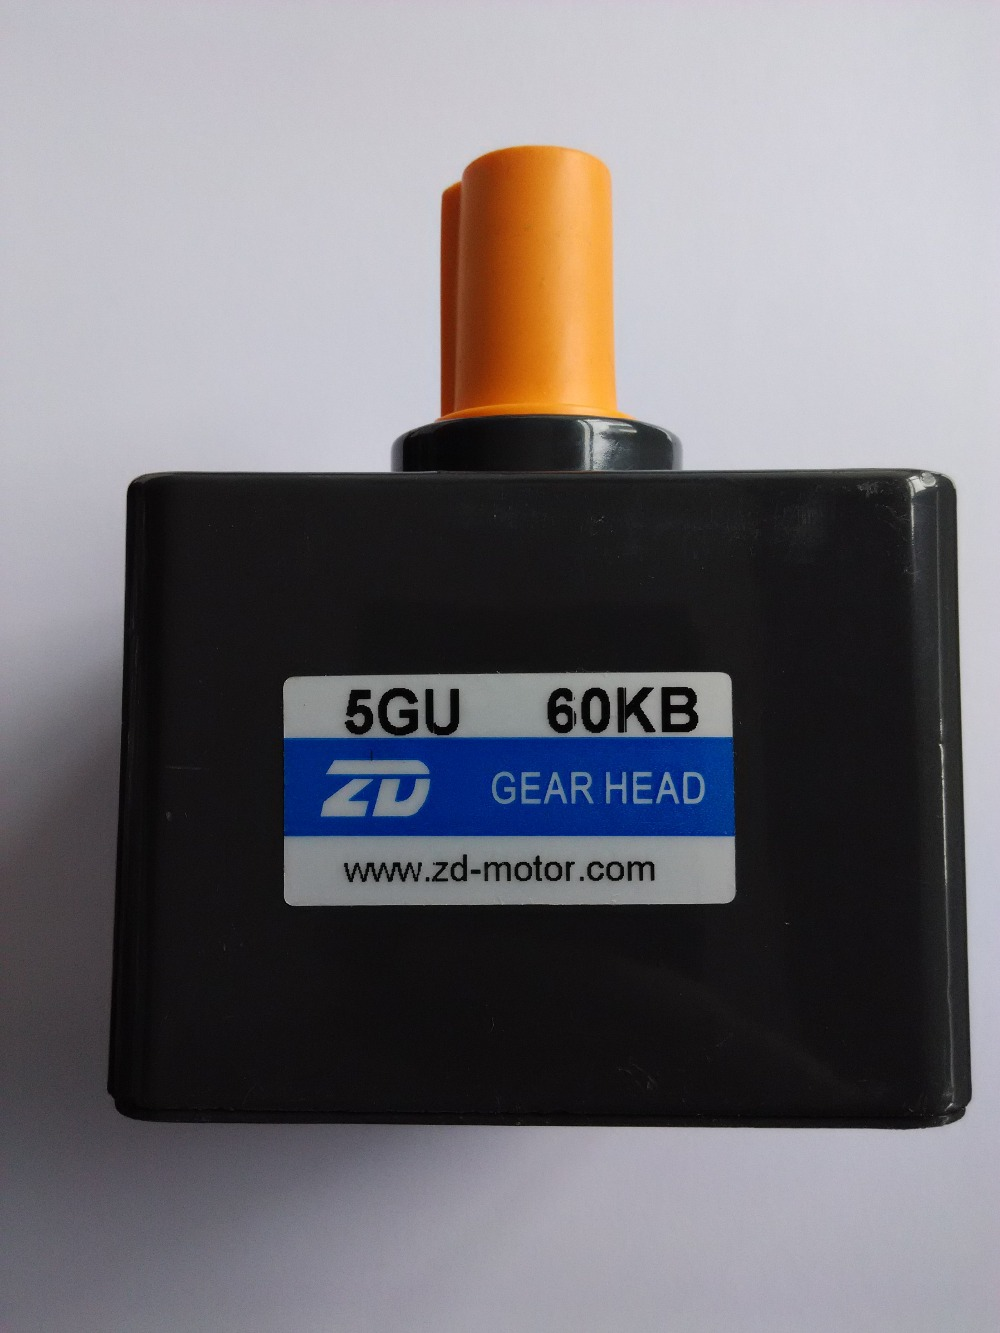 1:200 Gear case with a  condensator use for 15W 220V AC  reversible gear motor spur gearbox small reducer ratio 200:1 gearhead<br>